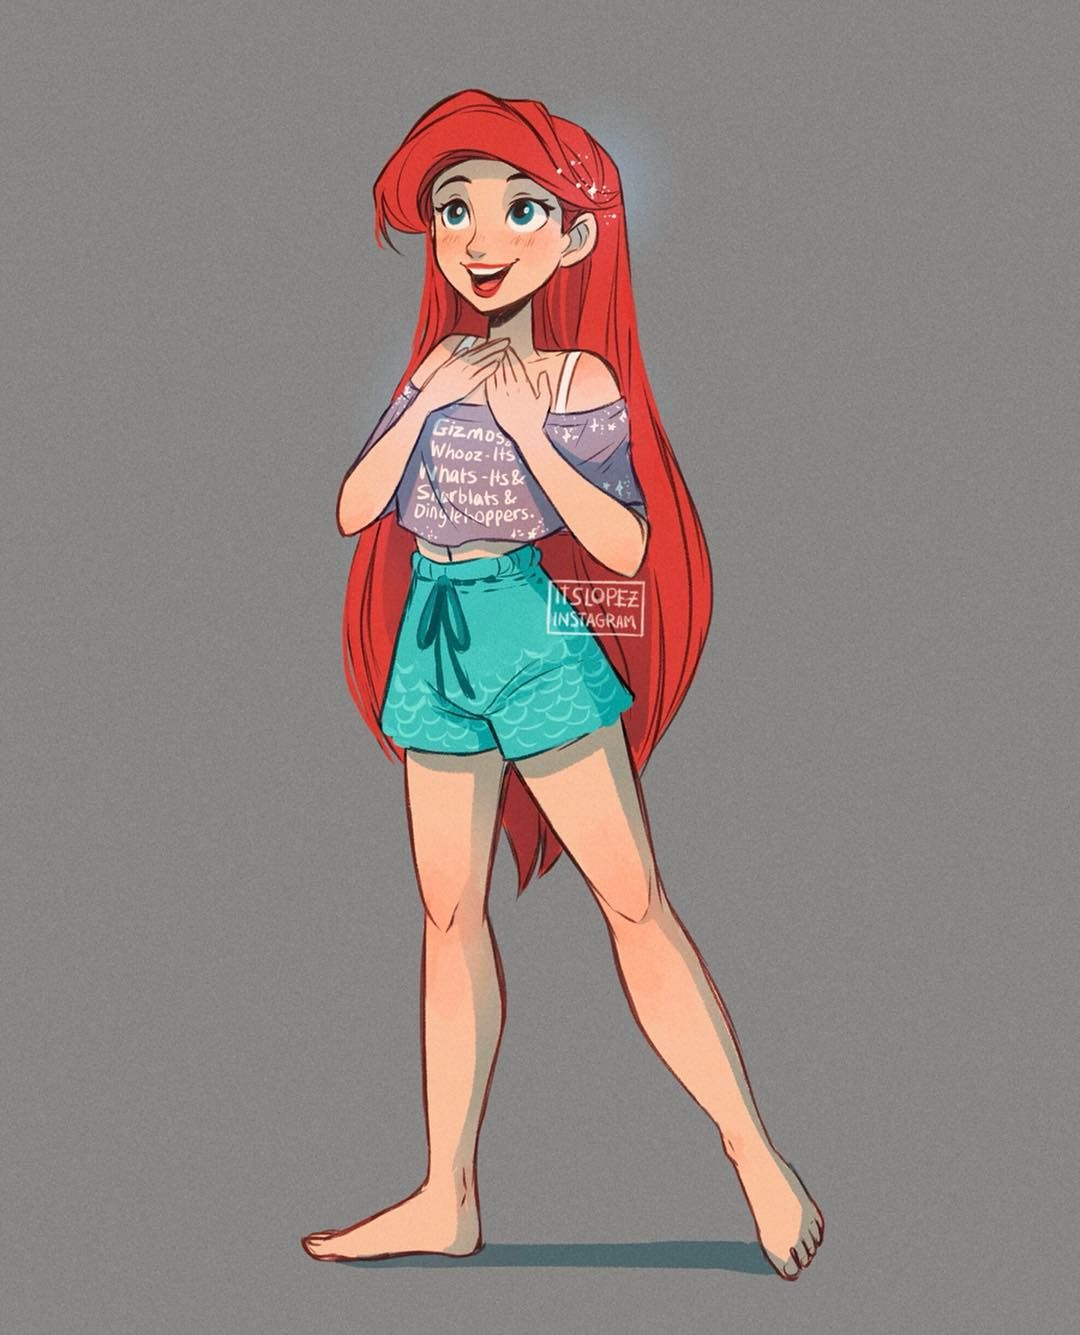 just watched Wreck it Ralph 2 and I confirm that Ariel's design is the cutest thing🐠